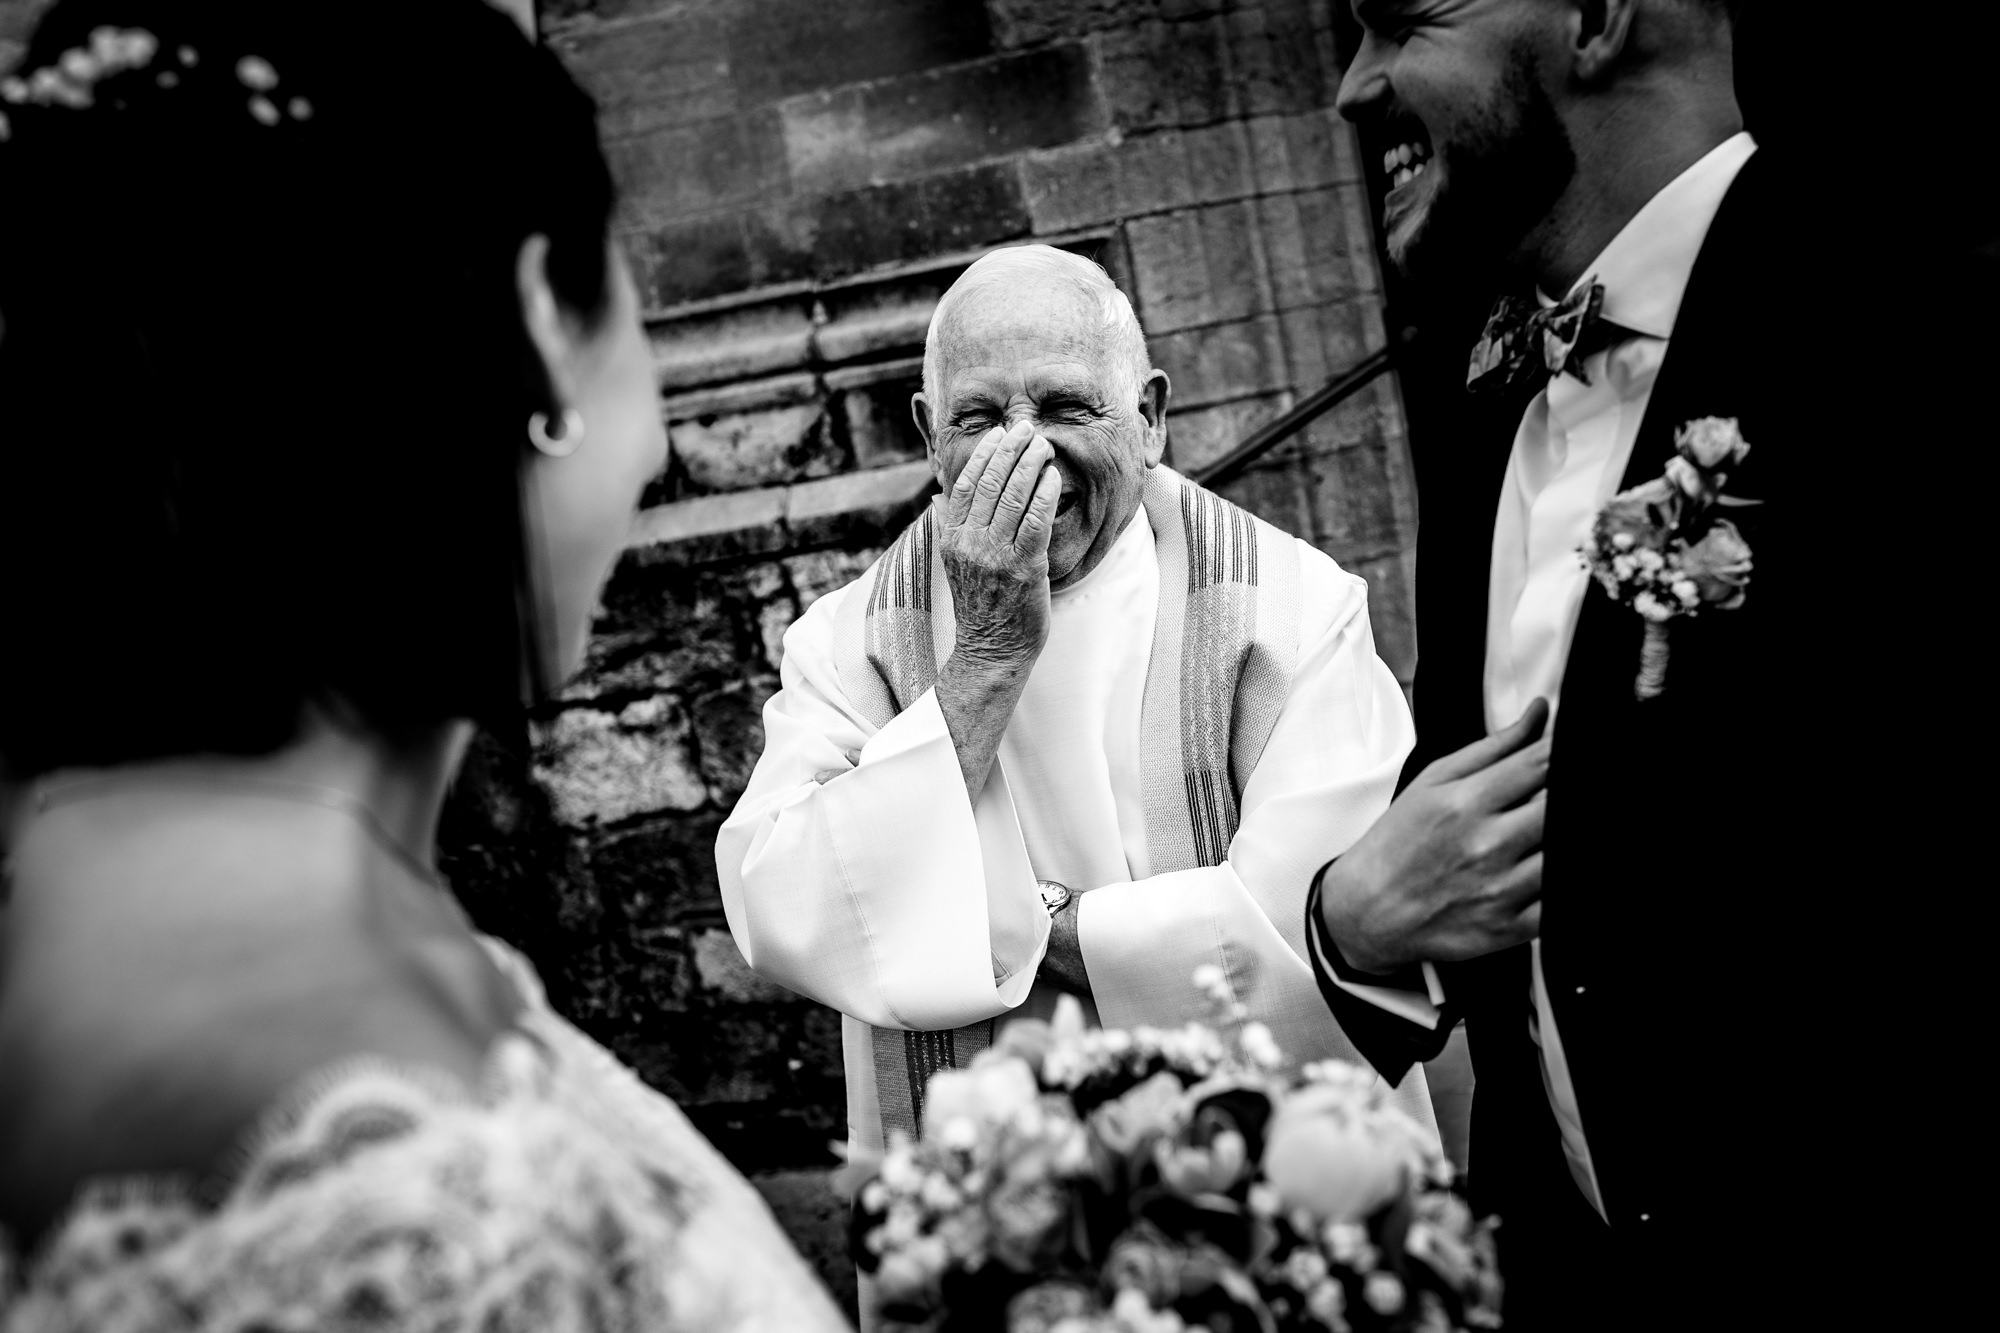 Sweet photo of priest laughing by Eppel Photography